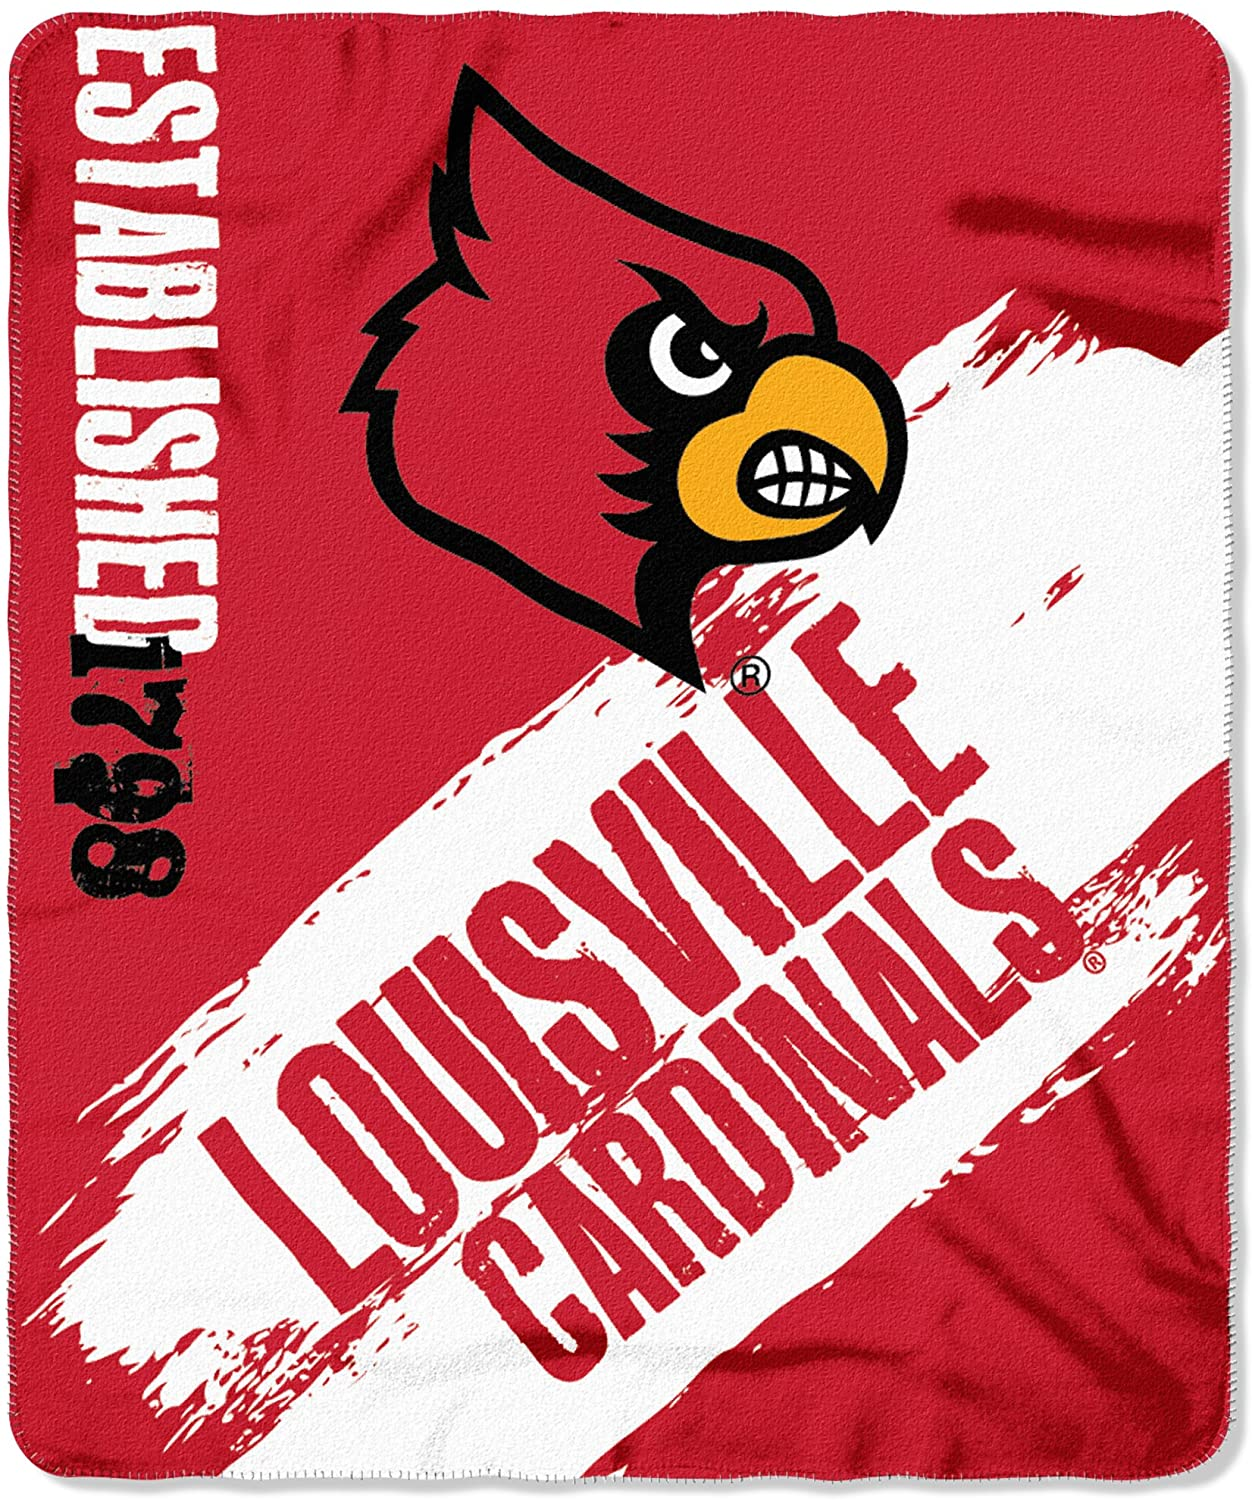 Officially Licensed Ncaa Printed Throw Louisville Cardinals Fleece Blanket